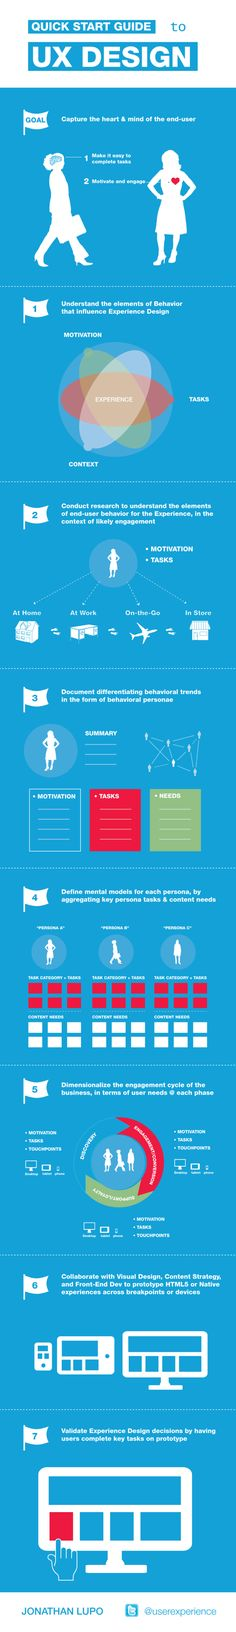 A Start Guide to UX Design | Infographic  #webdesign #UX #infographic